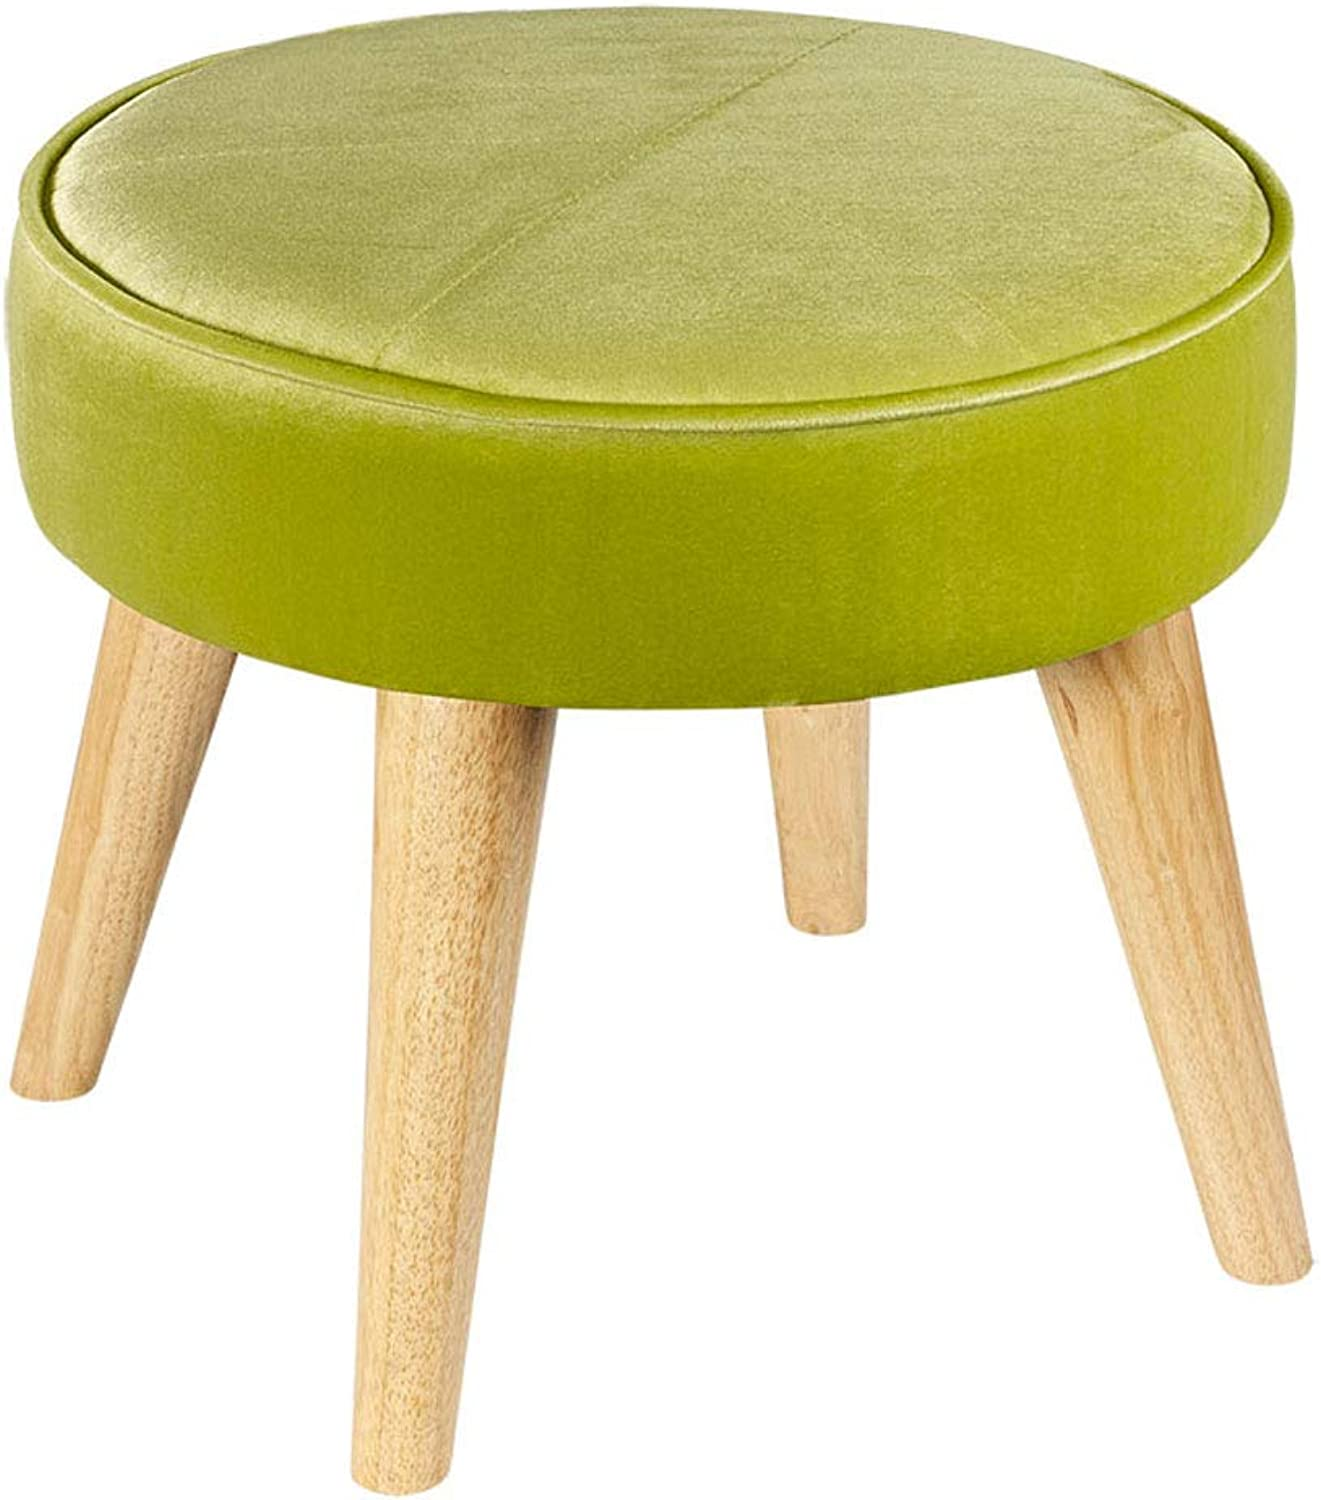 CQOZ Change shoes and Stool Fabric Sofa Stool Solid Wood feet Low Stool Simple and Modern Footstool Wear shoes Small Stool 40 × 36cm Sofa Stool (color    7)